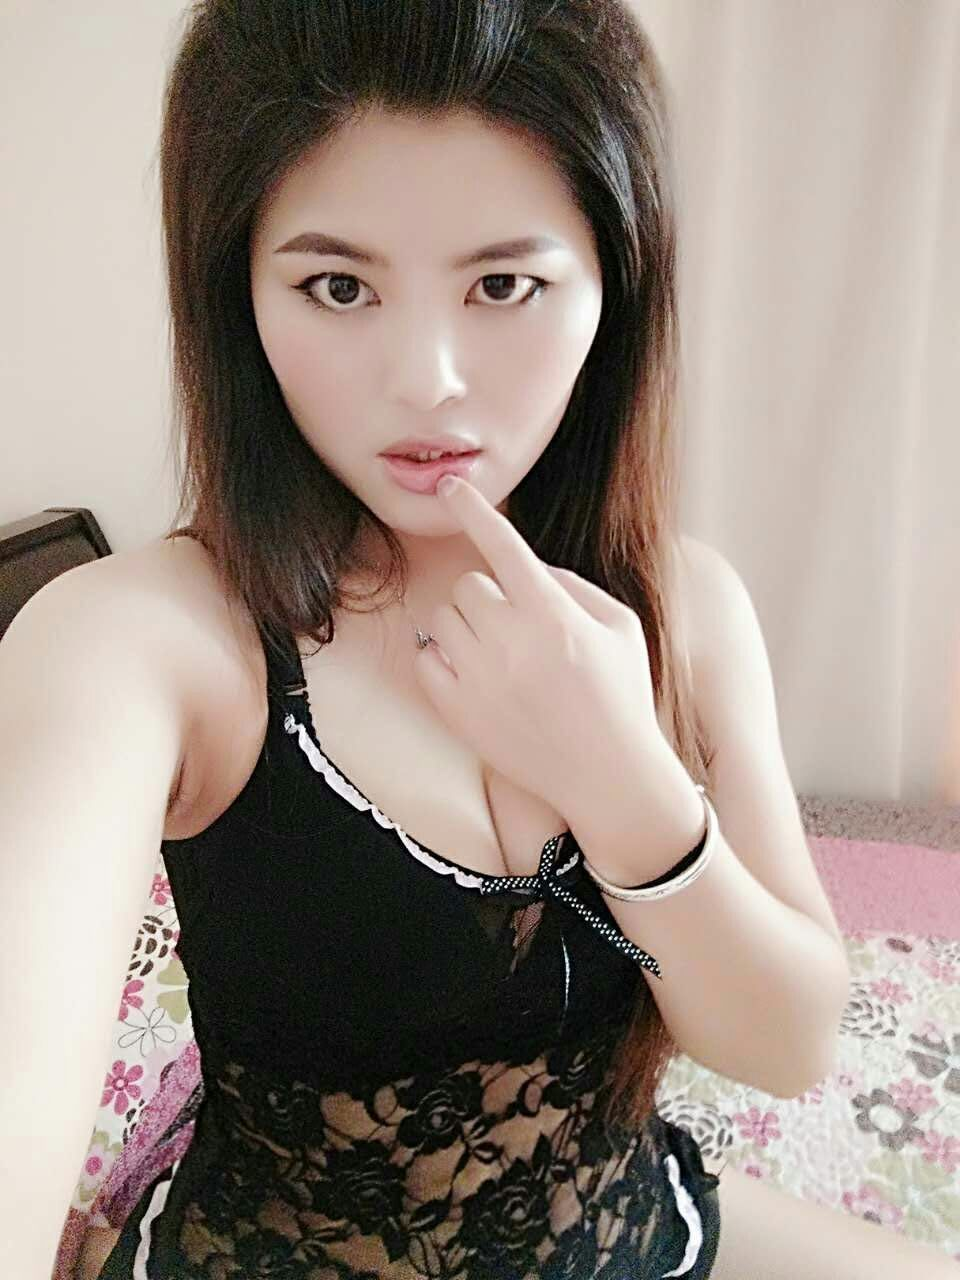 erotic thai massage erotisk massasje trondheim